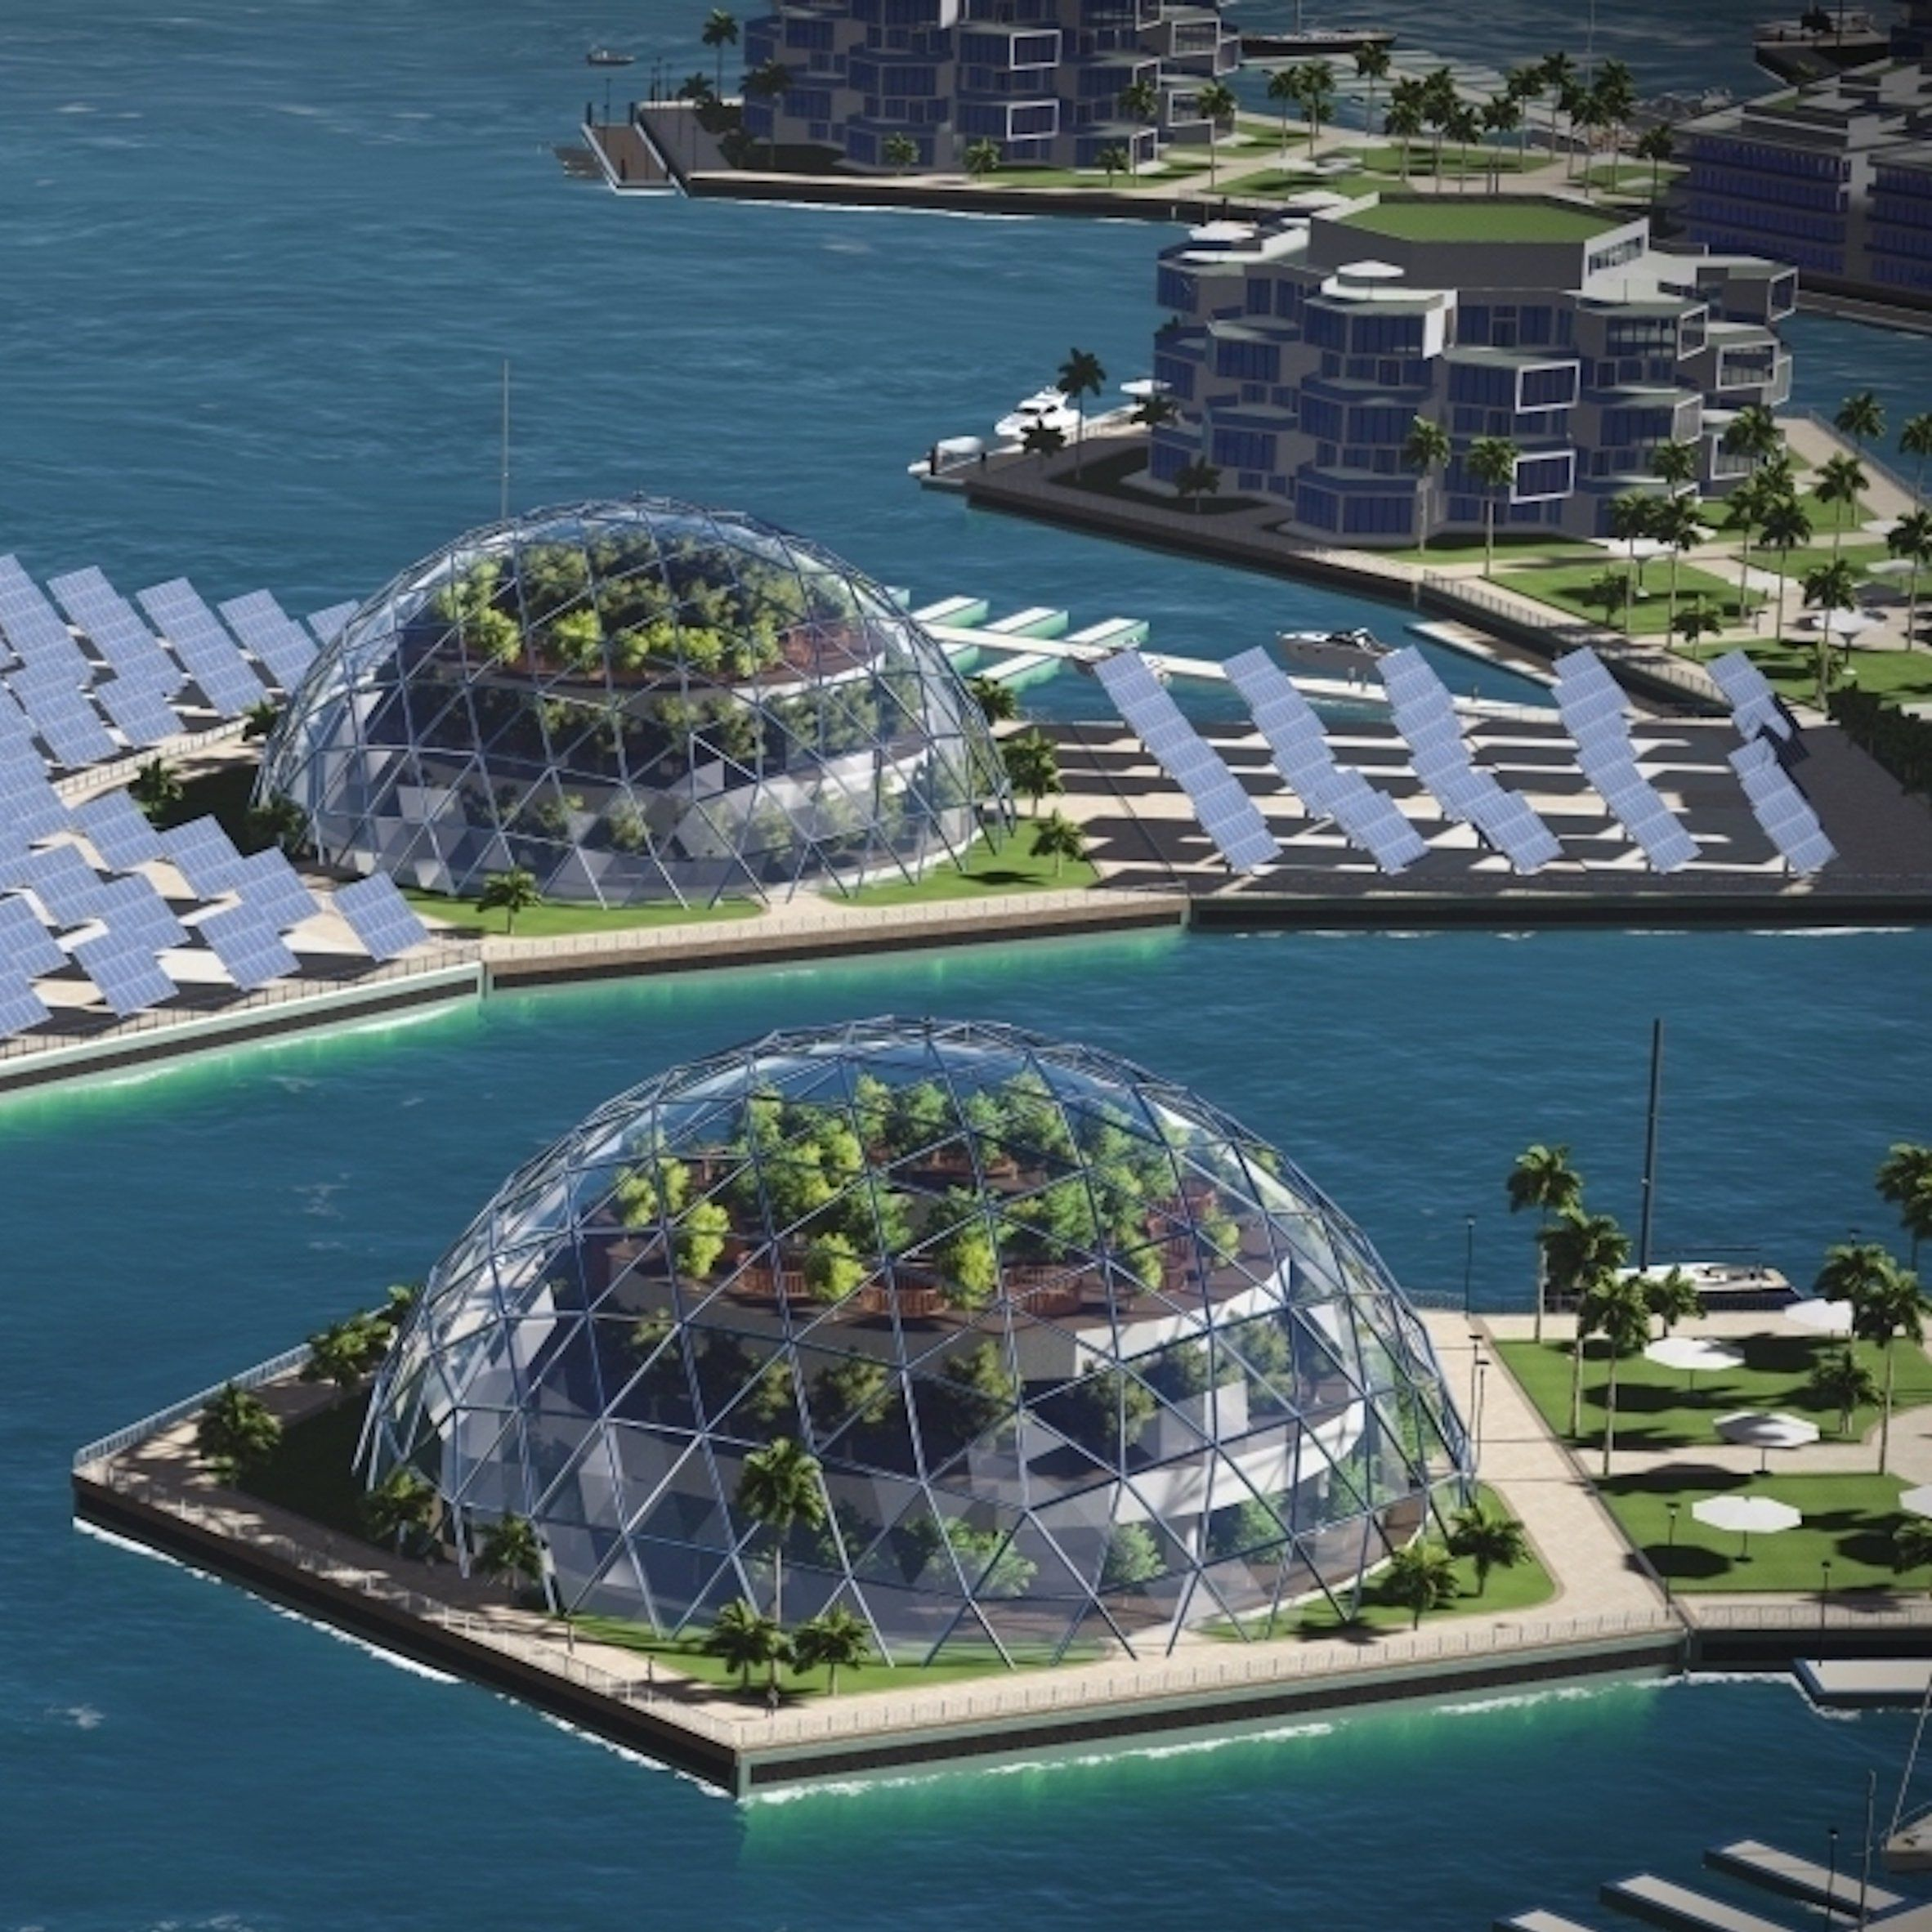 A Plan To Build Self-sufficient Floating Cities Outside Of